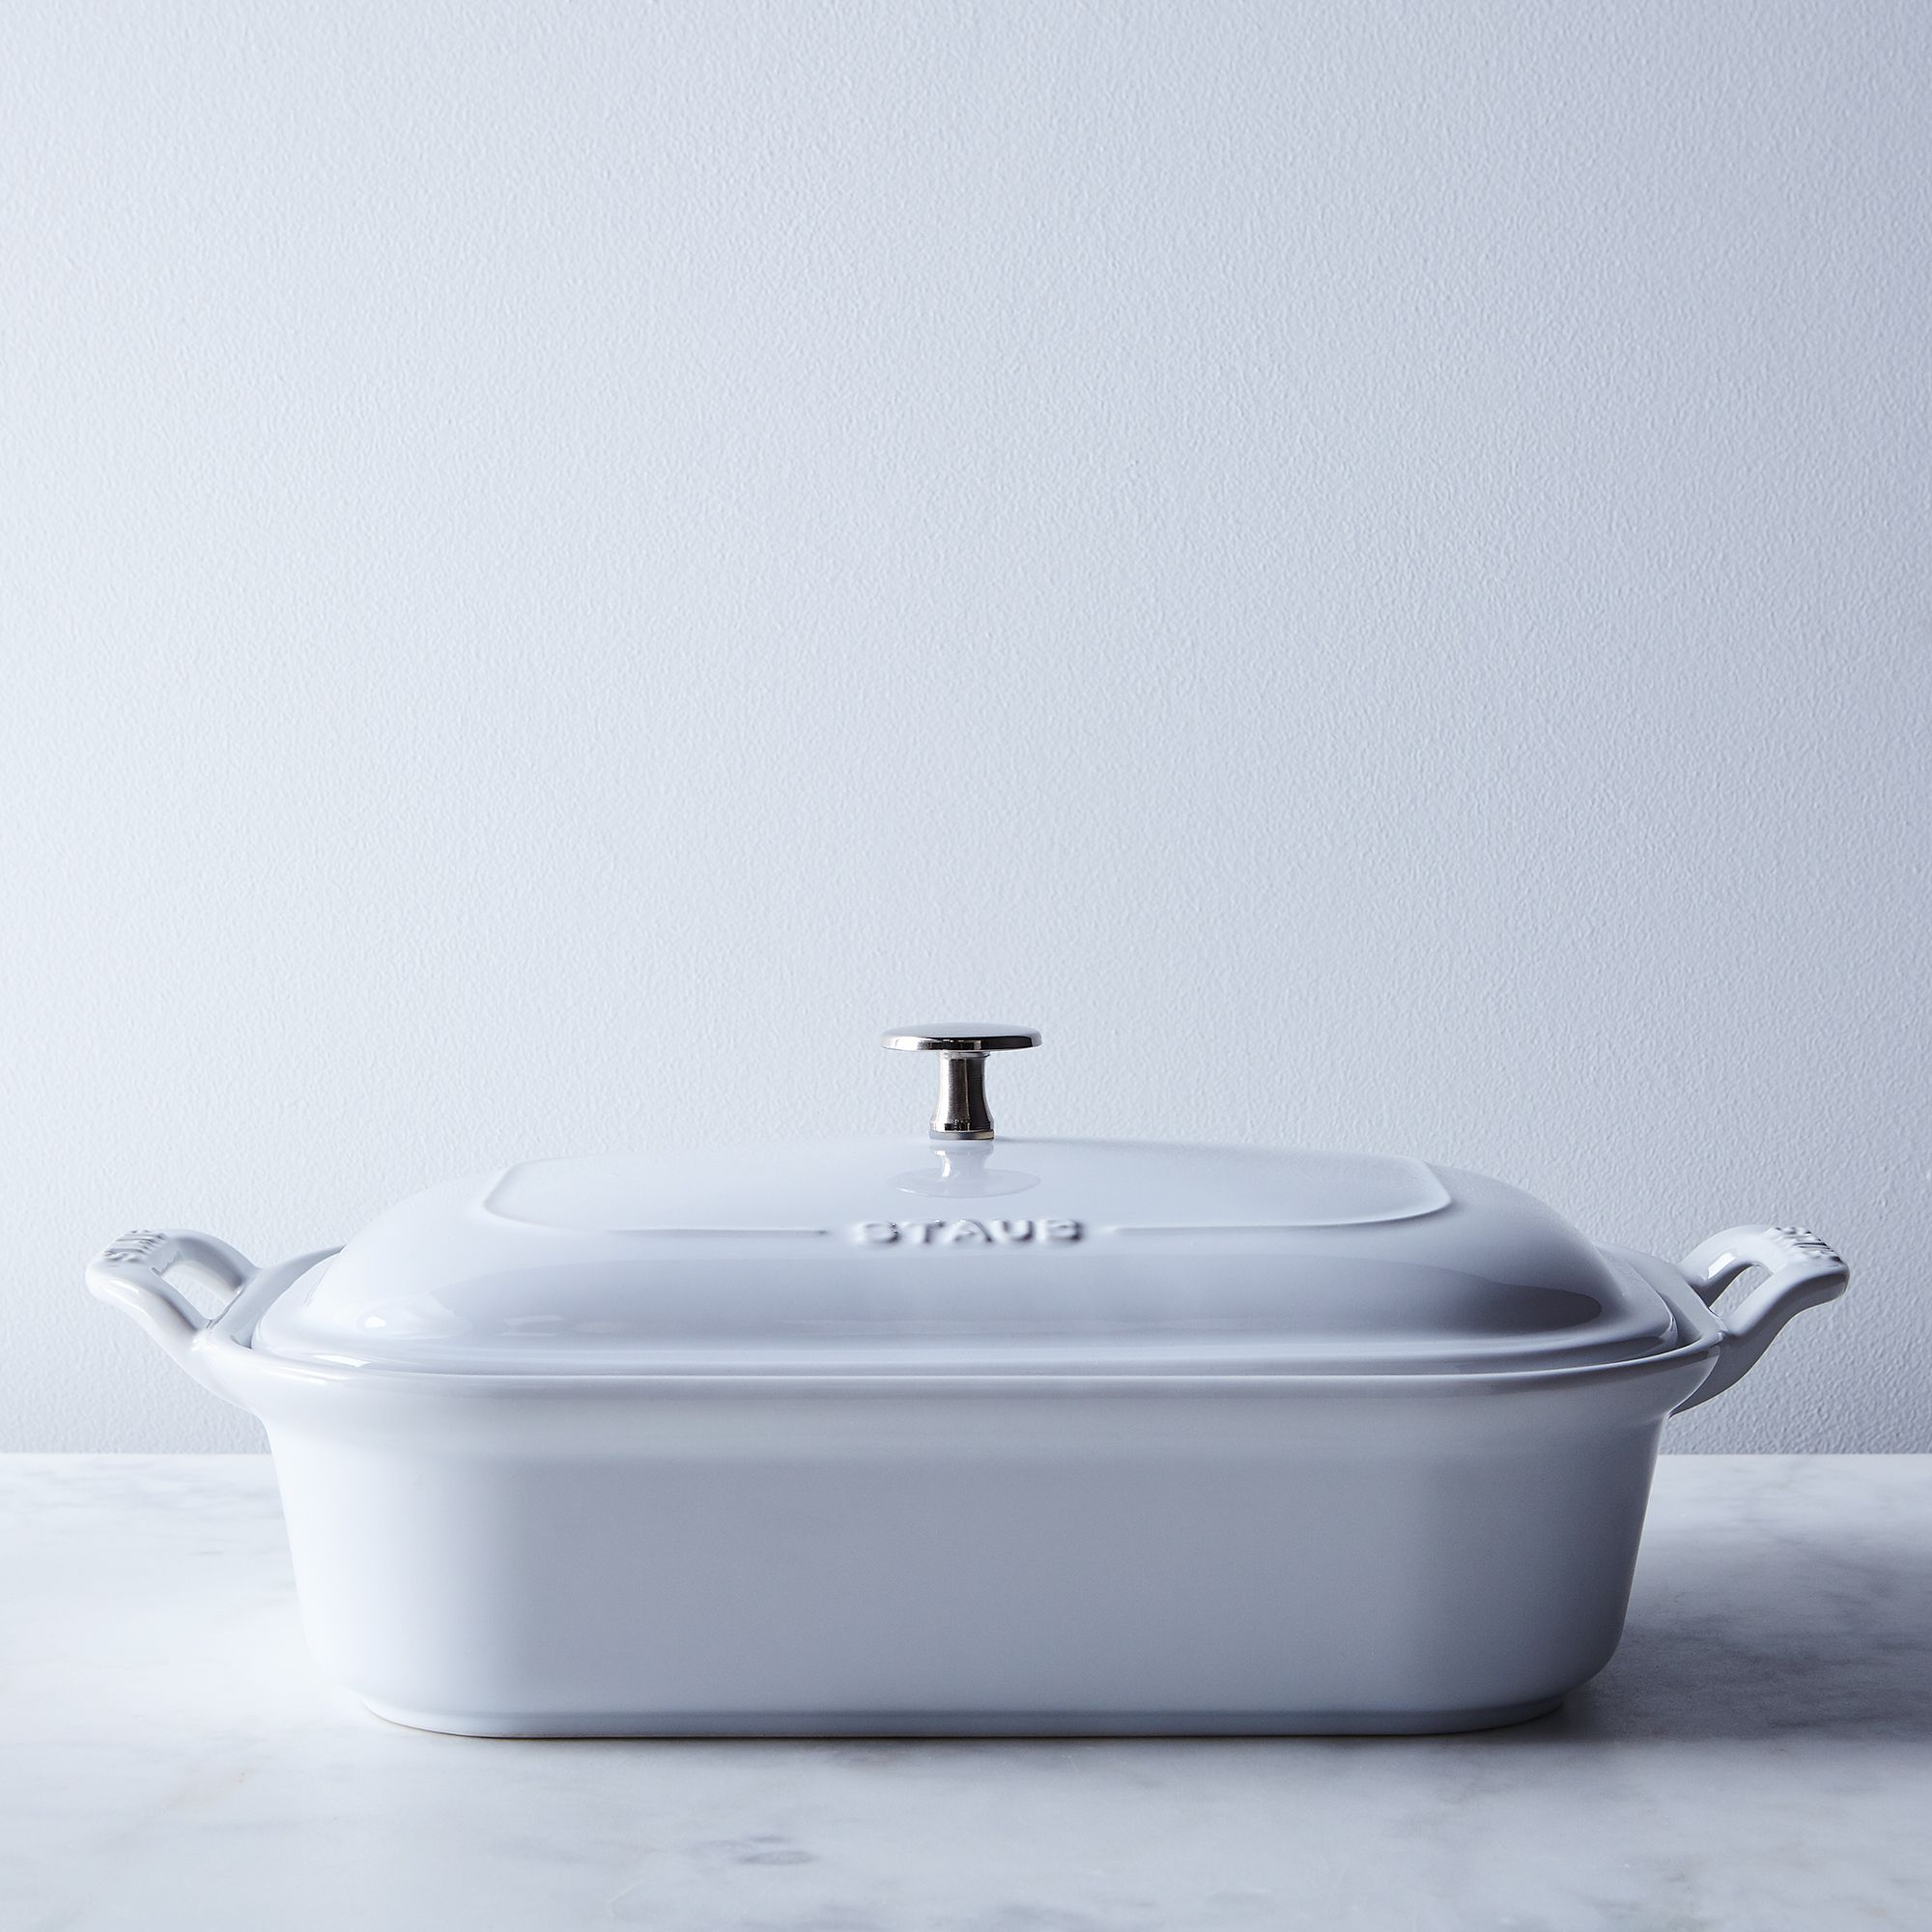 05104b2c bcee 4d58 ab89 9884b51c7d59  2017 0926 zwilling j a henckels staub white covered ceramic baking dish 4qt silo rocky luten 005